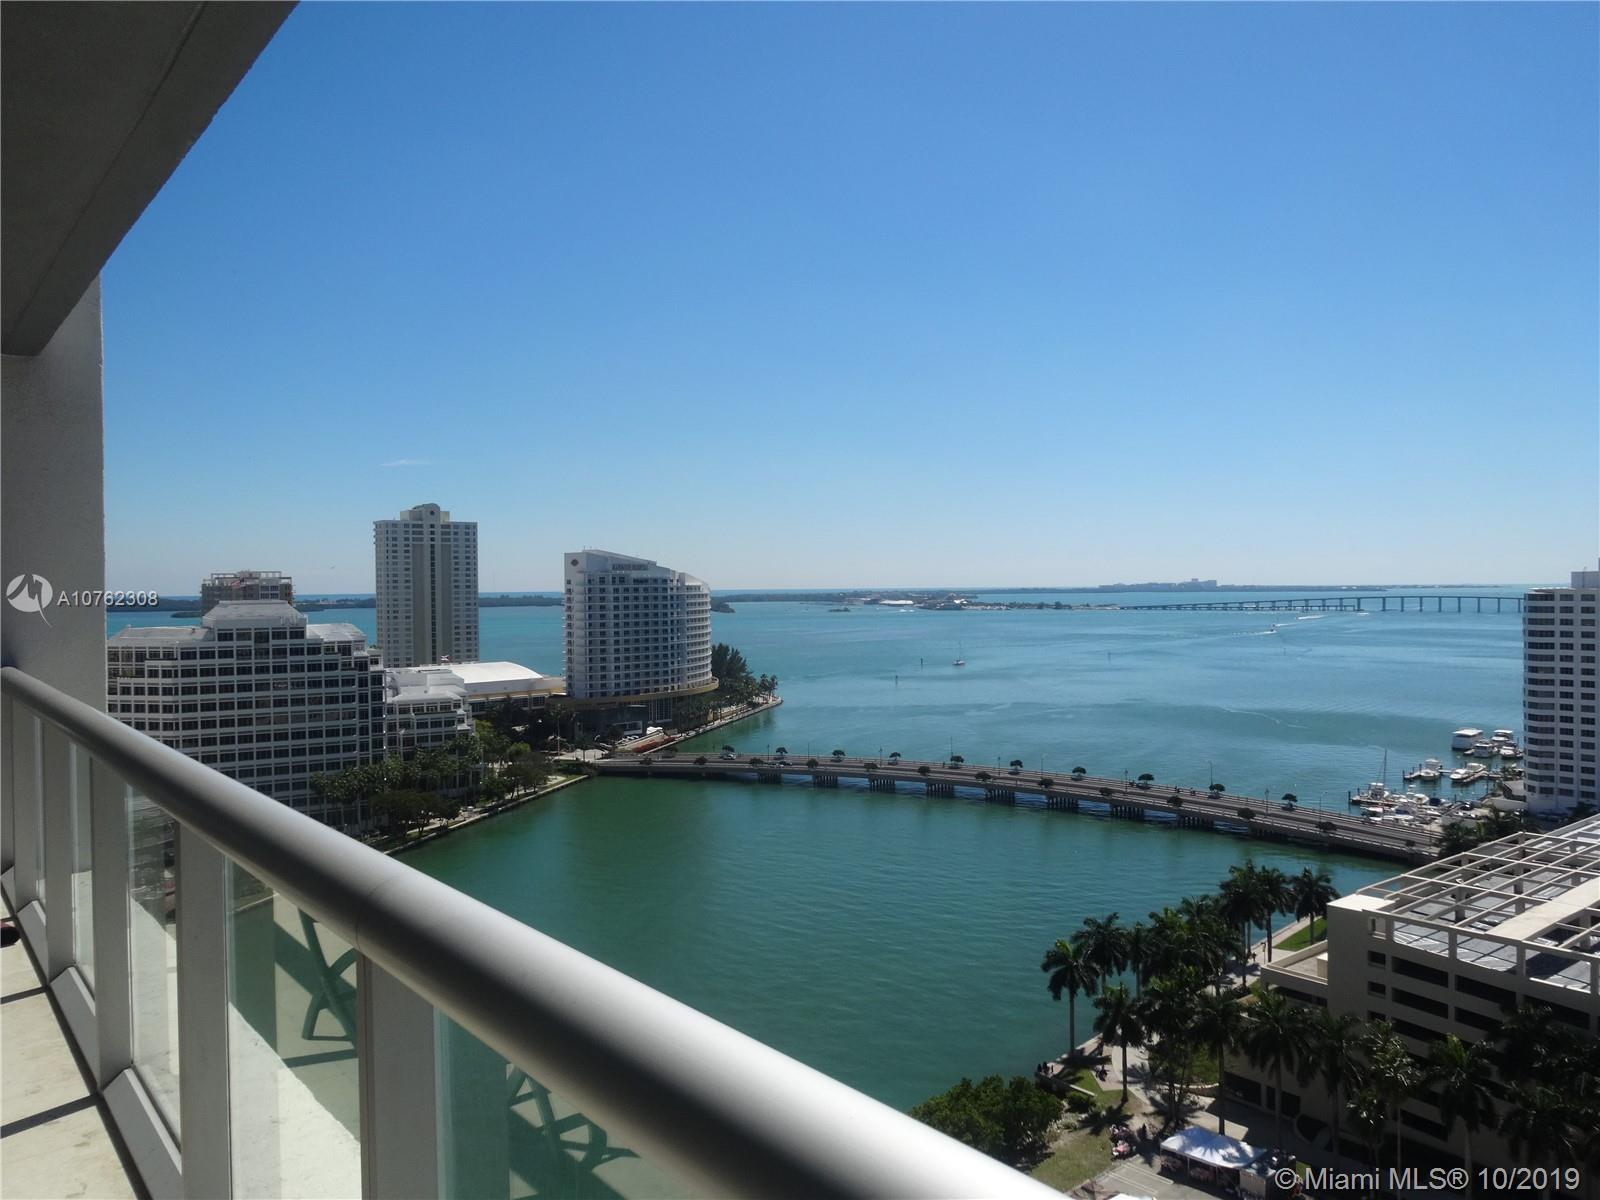 Amazing views from this 1/1 at Icon brickell. Unit is in excellent condition. Top of the line appliances, blinds/shades. Building has 5 star like resort amenities including: valet, concierge, gym, incredible spa and spa areas with treatment rooms, lap pool, in house market and deli cafe, etc. Ideally located in the heart of Brickell close to restaurants, Brickell City centre and metro mover. THIS UNIT IS RENTED TILL NOV 2020. Ideal for investor.